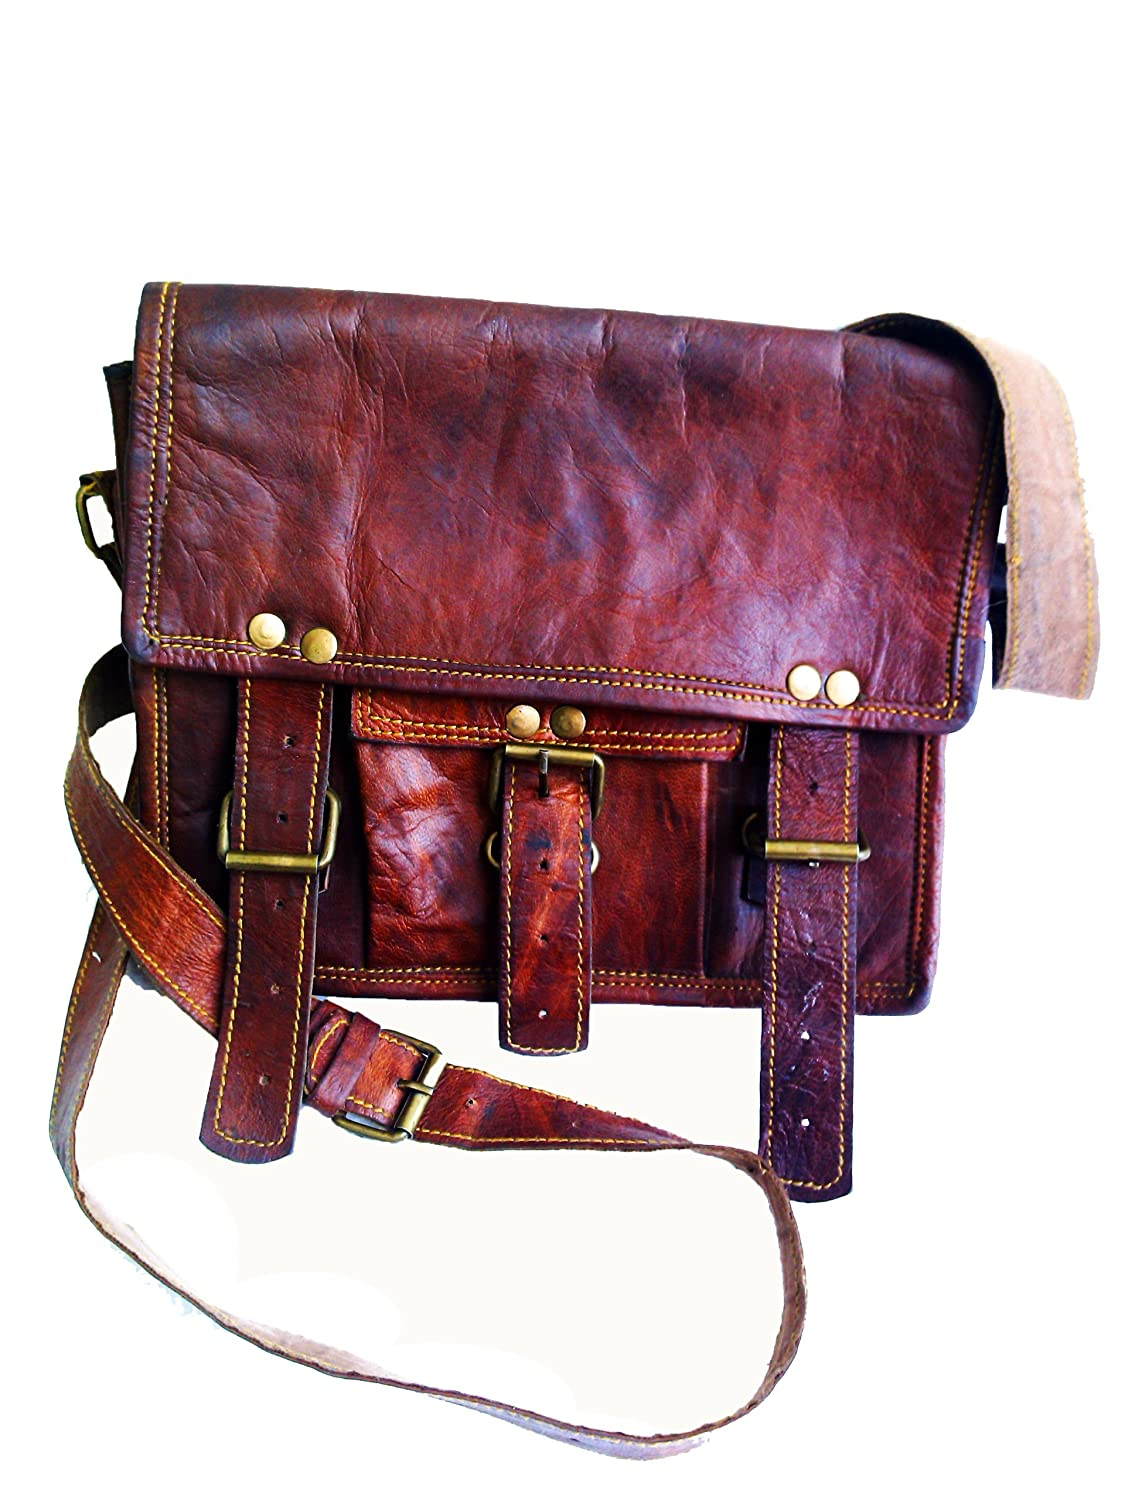 Men's Real Genuine Leather Cross Body Messenger Shoulder Passport Bag Ipad / Tablet Satchel Bag